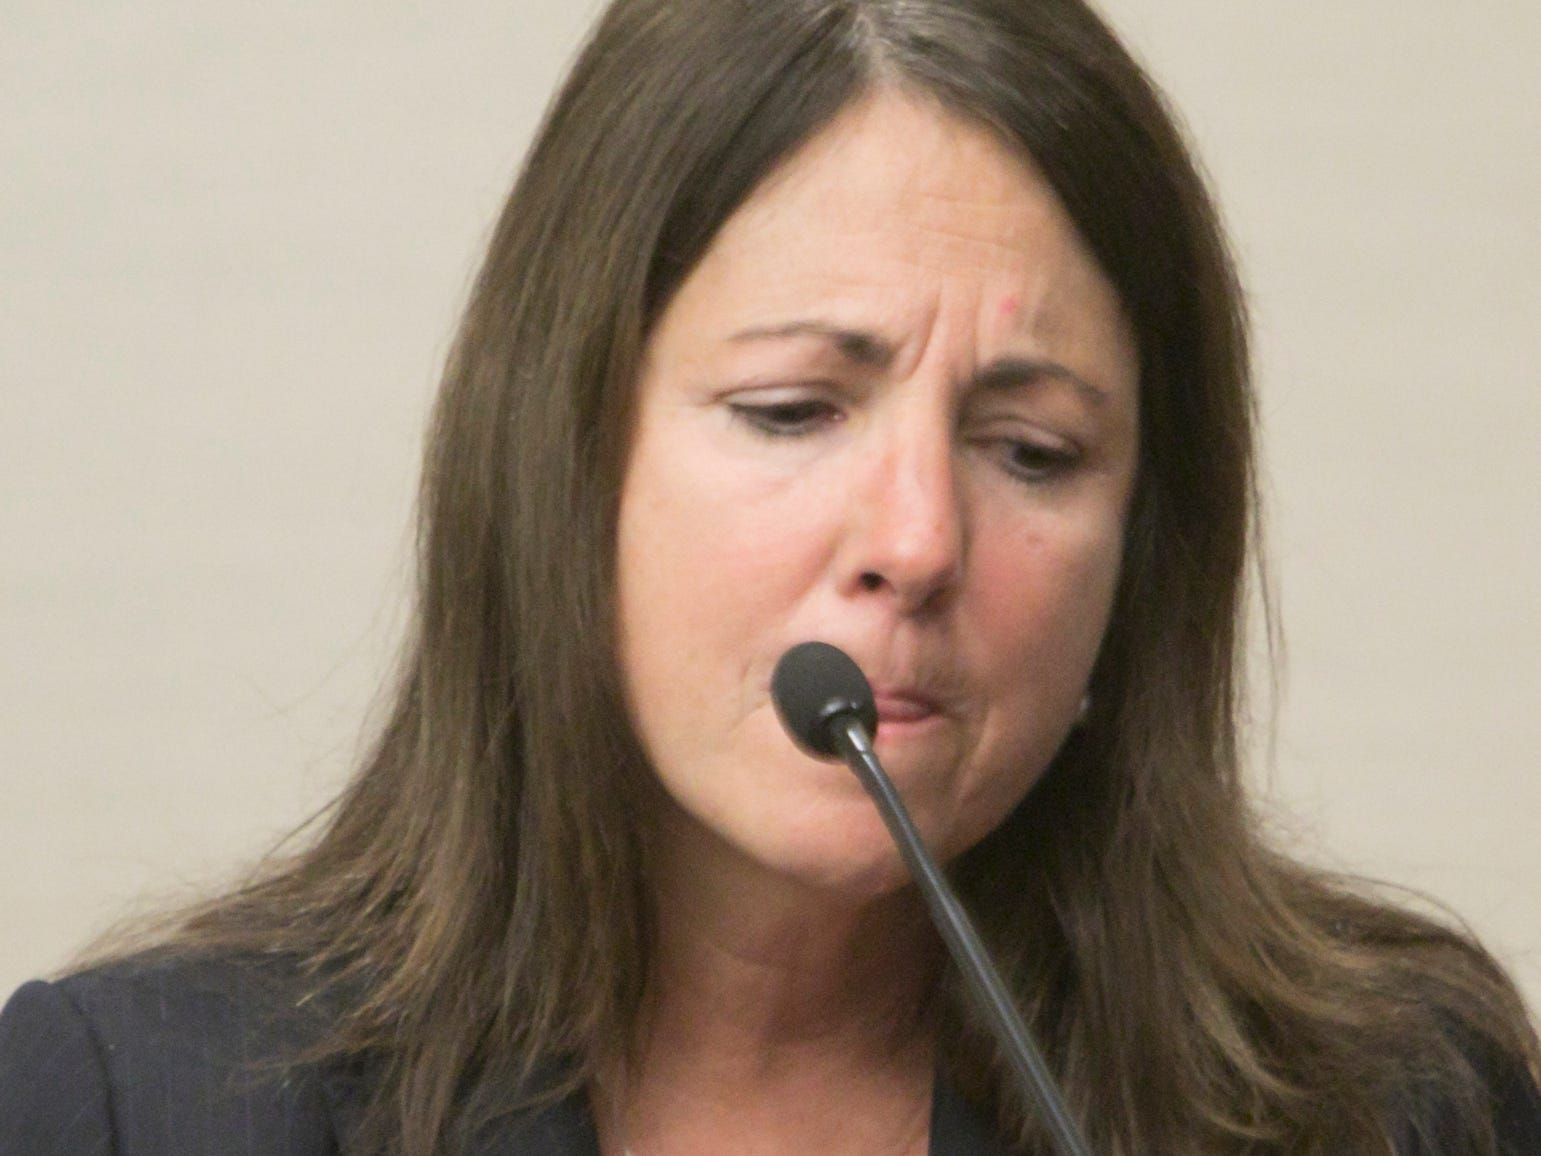 Emotion crosses the face of Judge Theresa Brennan as she recounts her early experience both as an attorney and later as District Court judge during Judicial Tenure Commission hearing testimony Monday, Oct. 8, 2018.